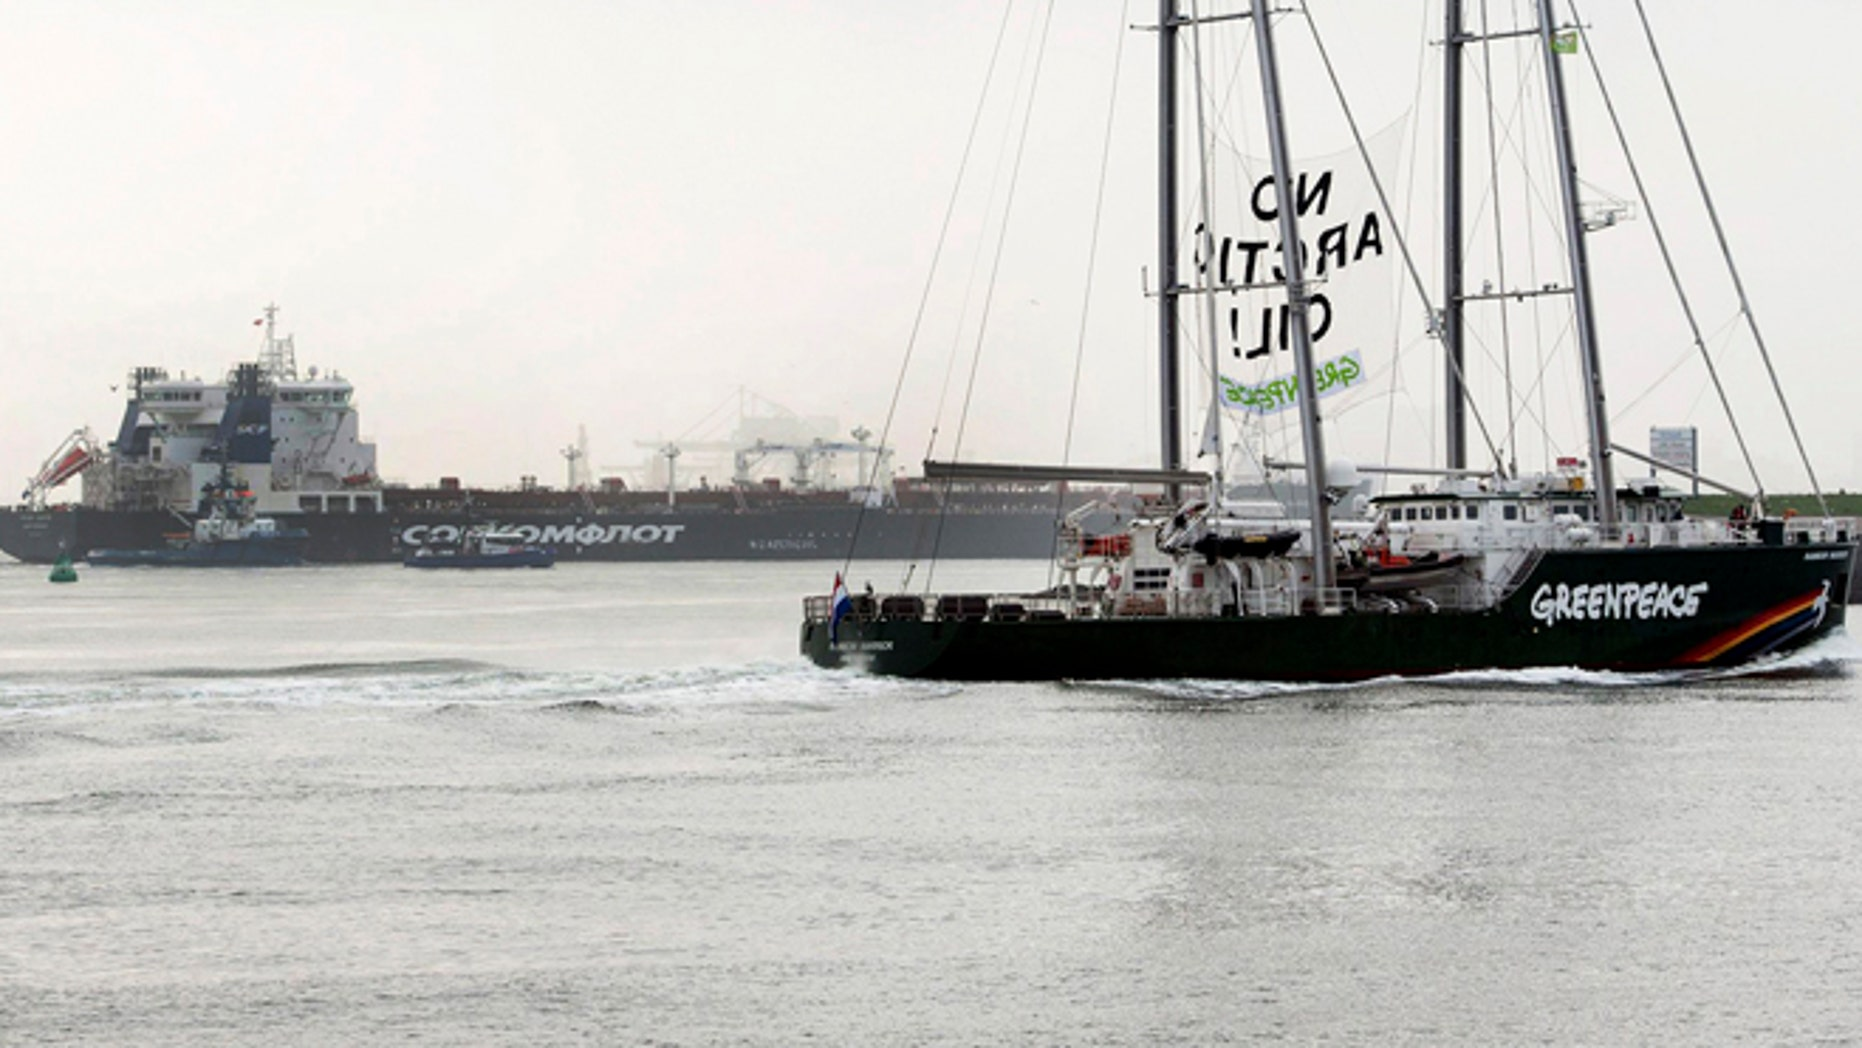 """May 1, 2014: This image made available by environmental organization Greenpeace shows the Greenpeace ship Rainbow Warrior showing a banner reading: """"No Arctic Oil"""" as Greenpeace activists aboard inflatable boats paint """"No Arctic Oil"""" on the side of the Mikhail Ulyanov oil tanker, seen in the background, in Rotterdam, Netherlands."""